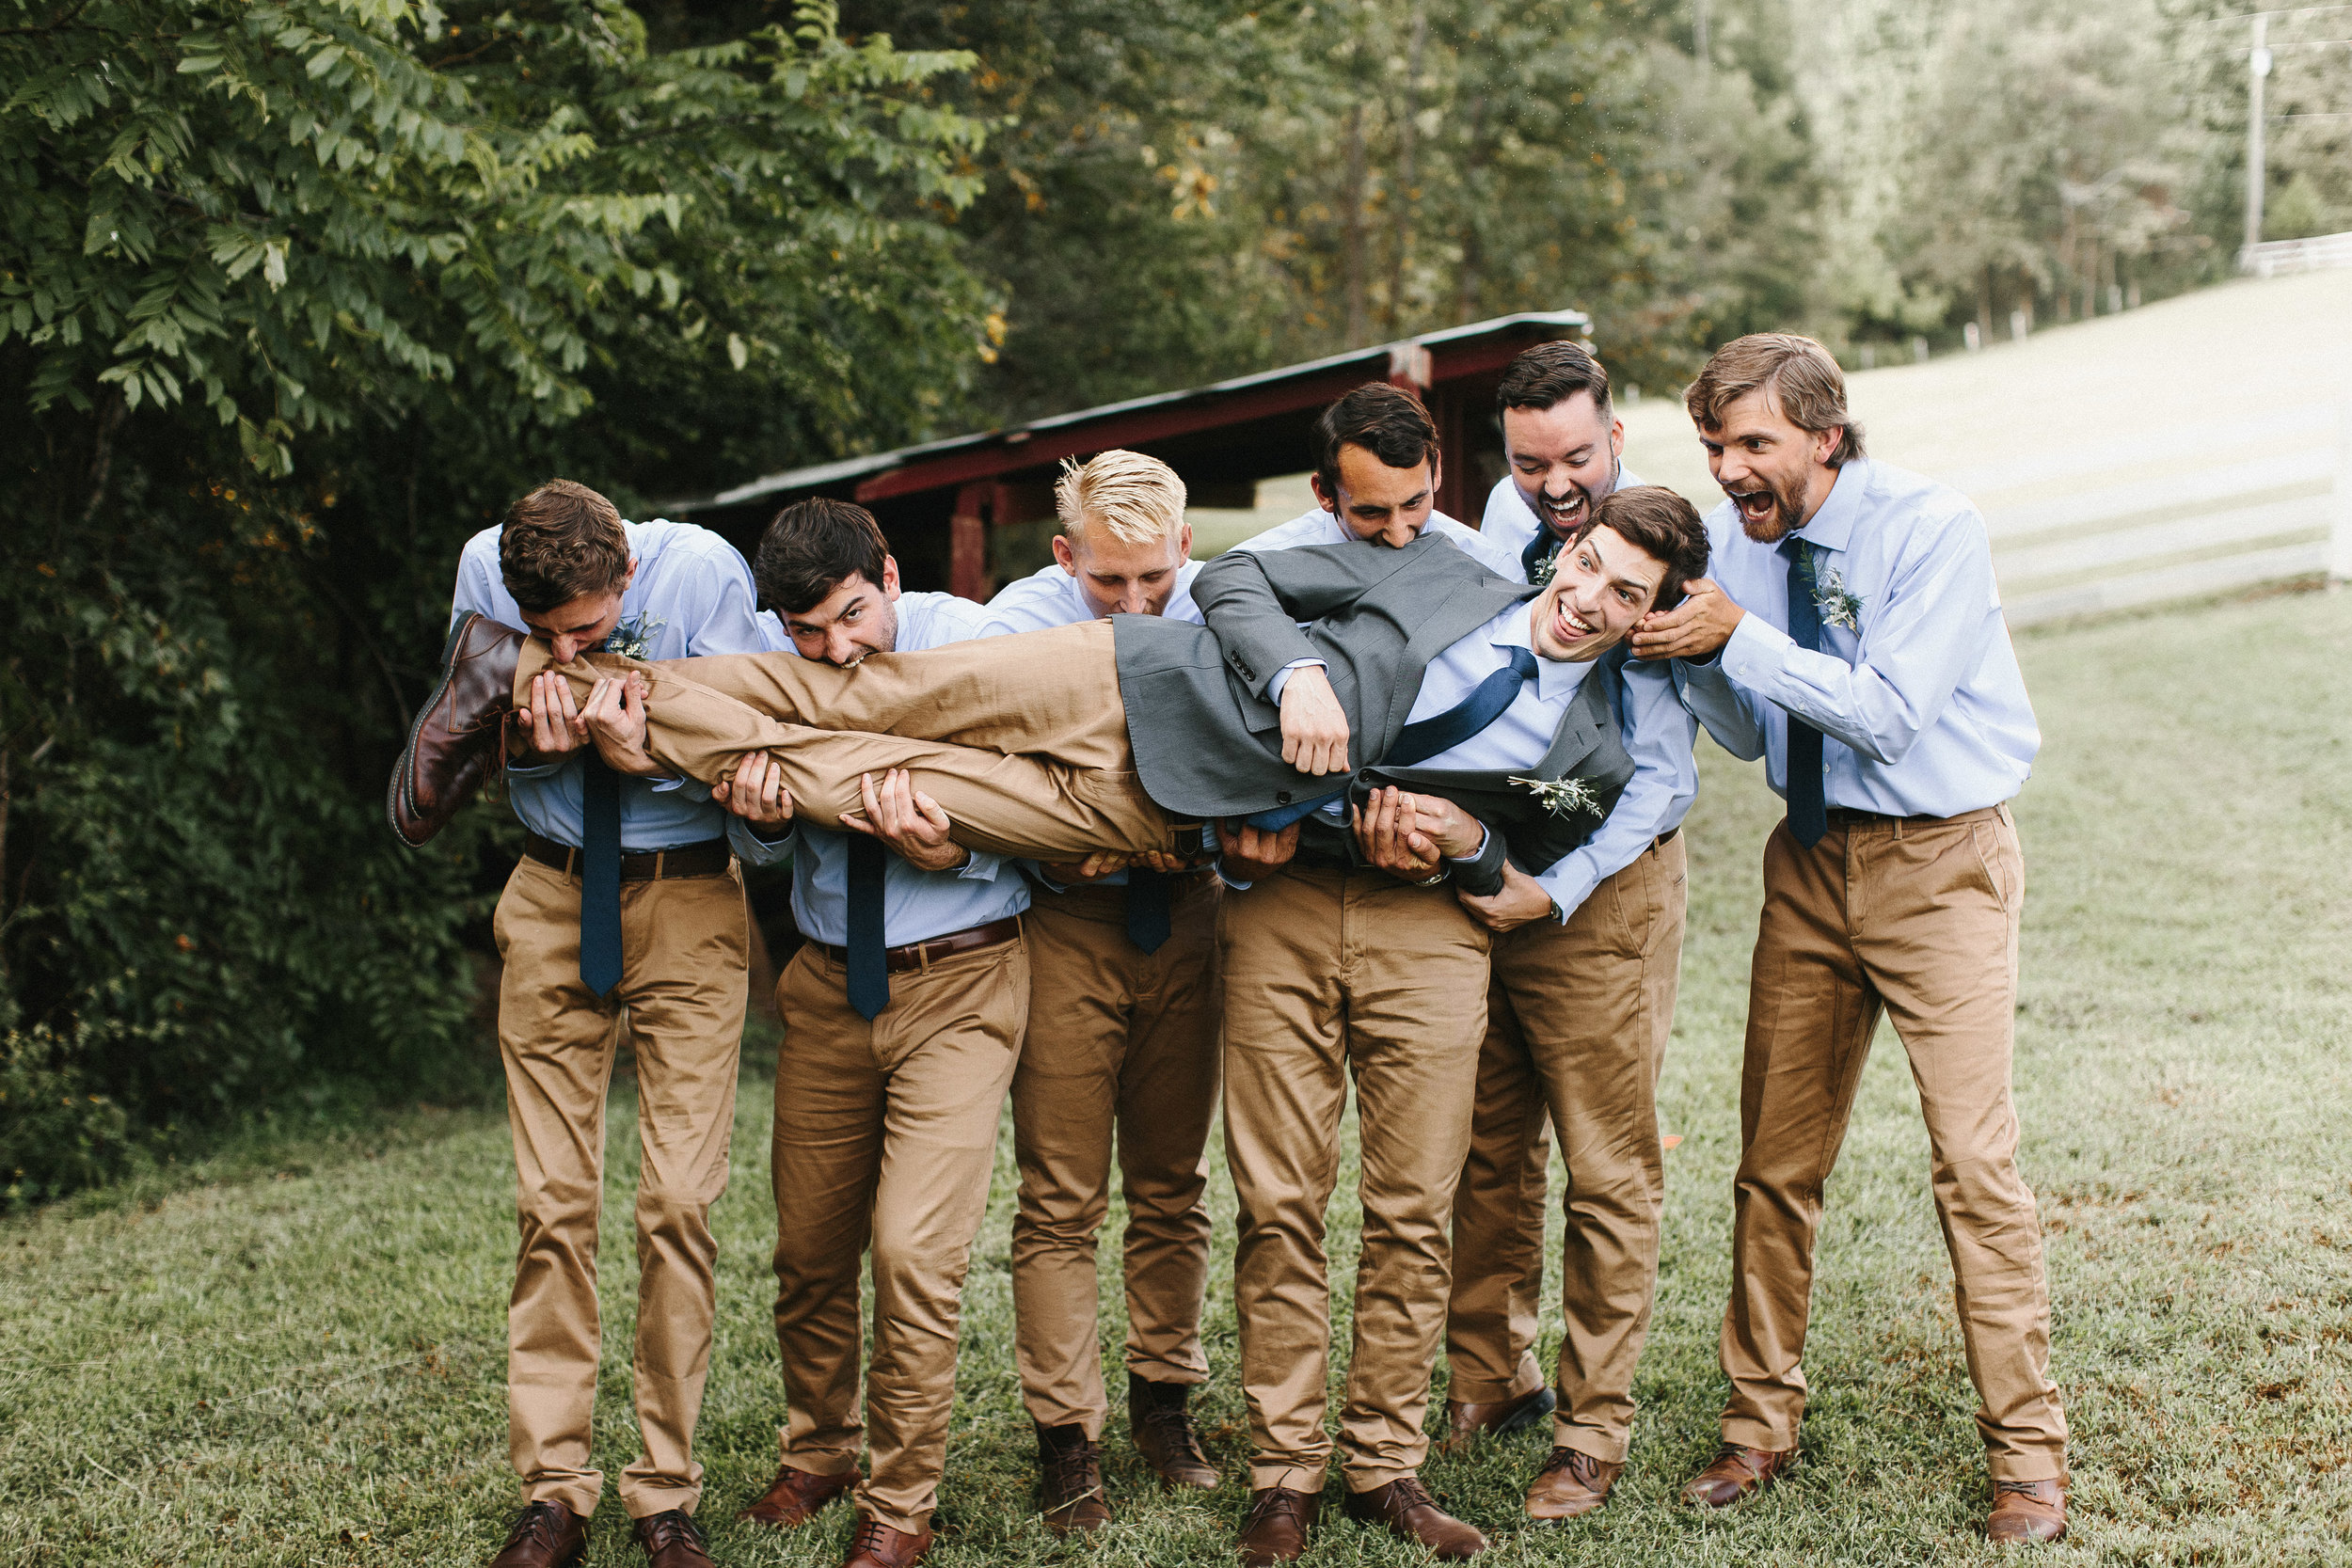 cleveland_georgia_mountain_laurel_farm_natural_classic_timeless_documentary_candid_wedding_emotional_photojournalism_river_west_1518.jpg